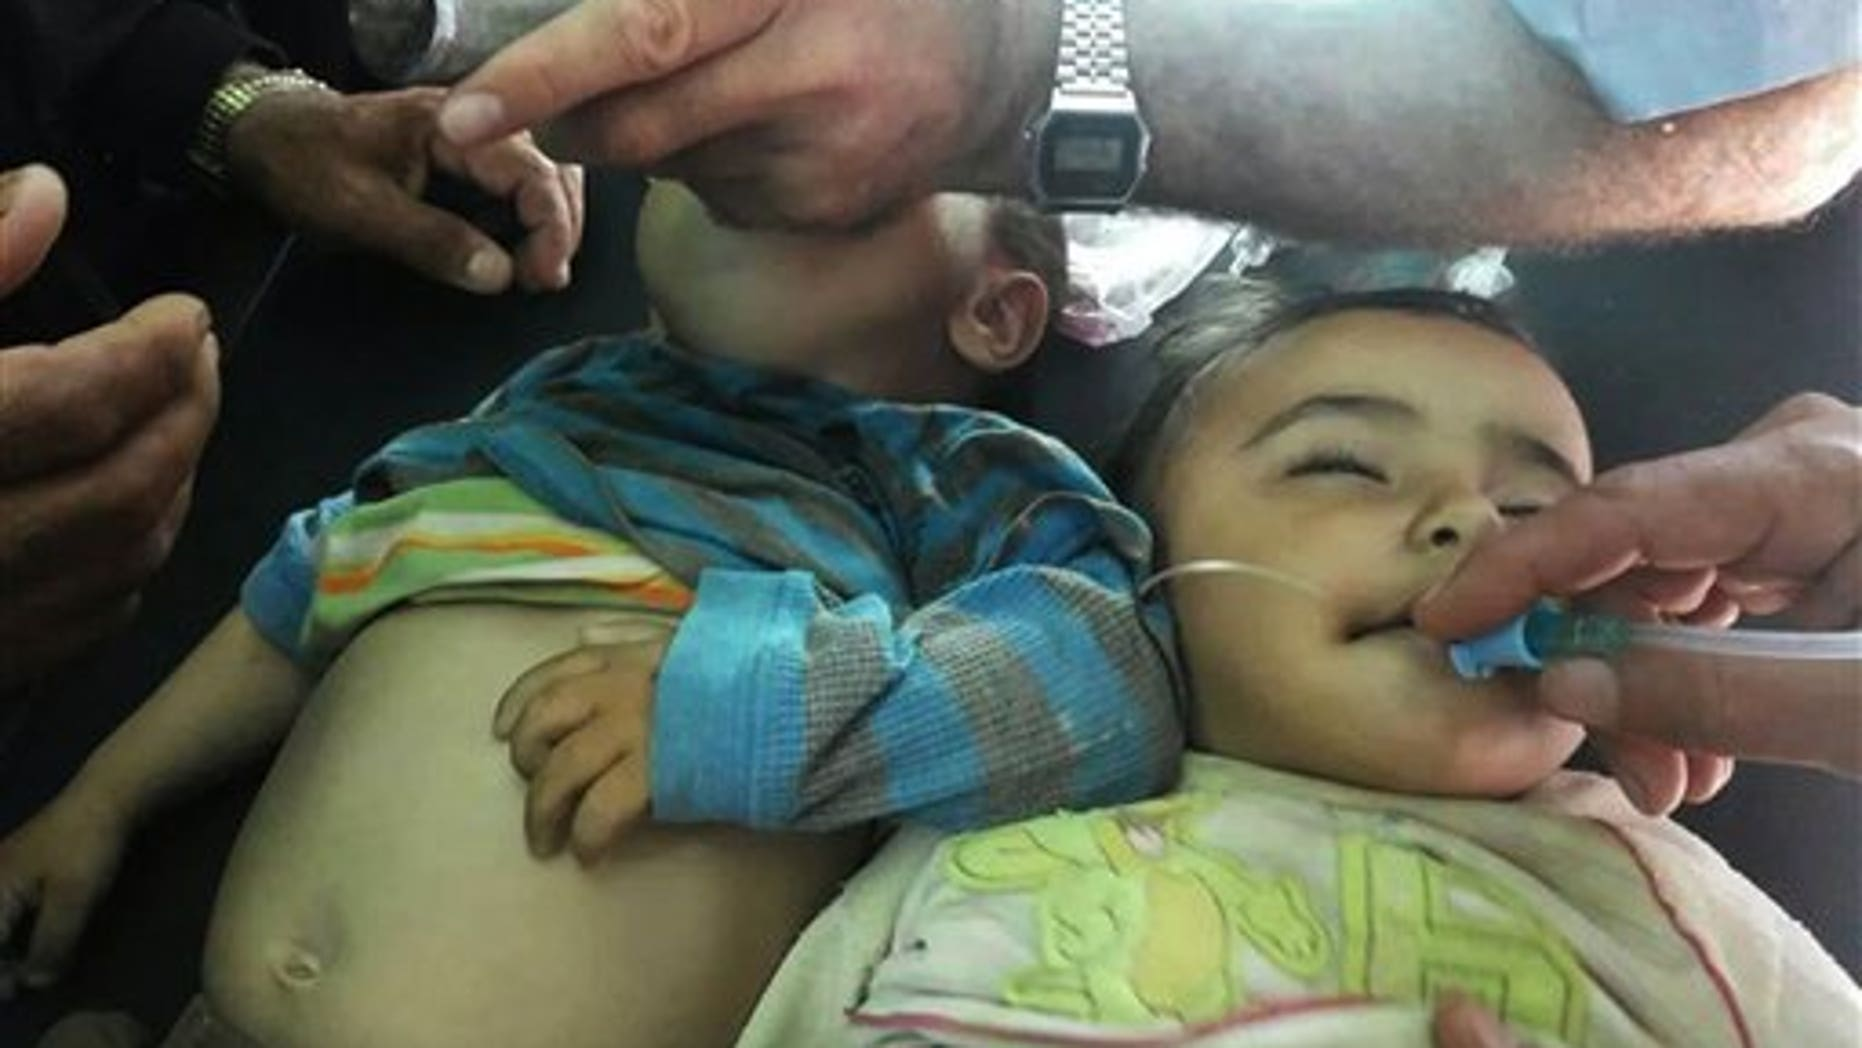 Sept. 17, 2014: Two Syrian children receive treatment after they were given a second round of measles vaccinations, in Idlib province. At least 15 children died after receiving vaccinations in rebel-held parts of Syria.